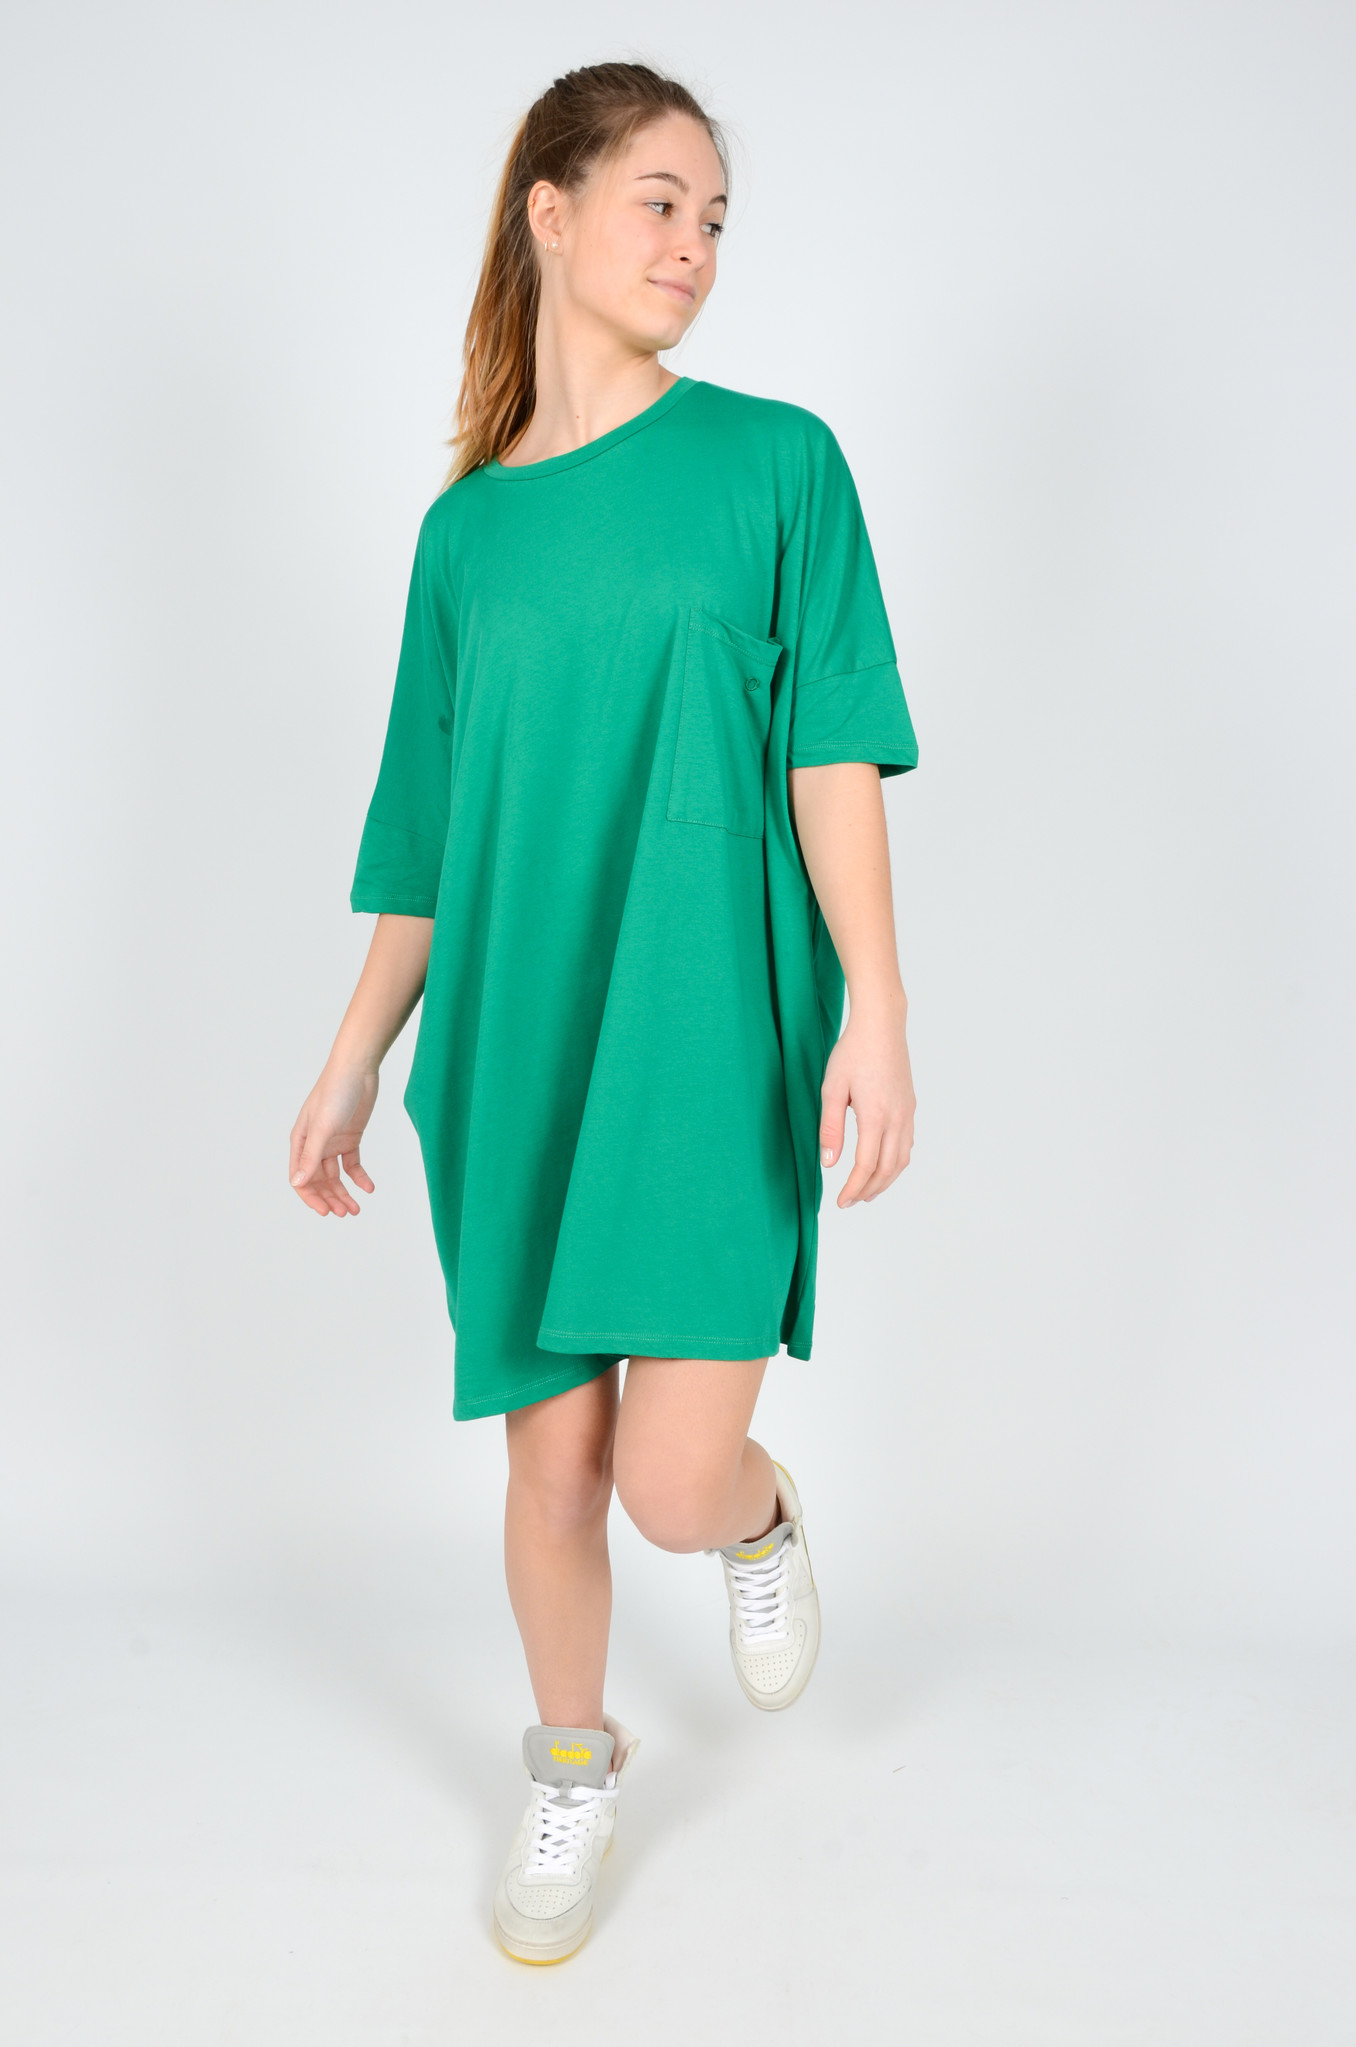 T-DRESS IN GREEN-6